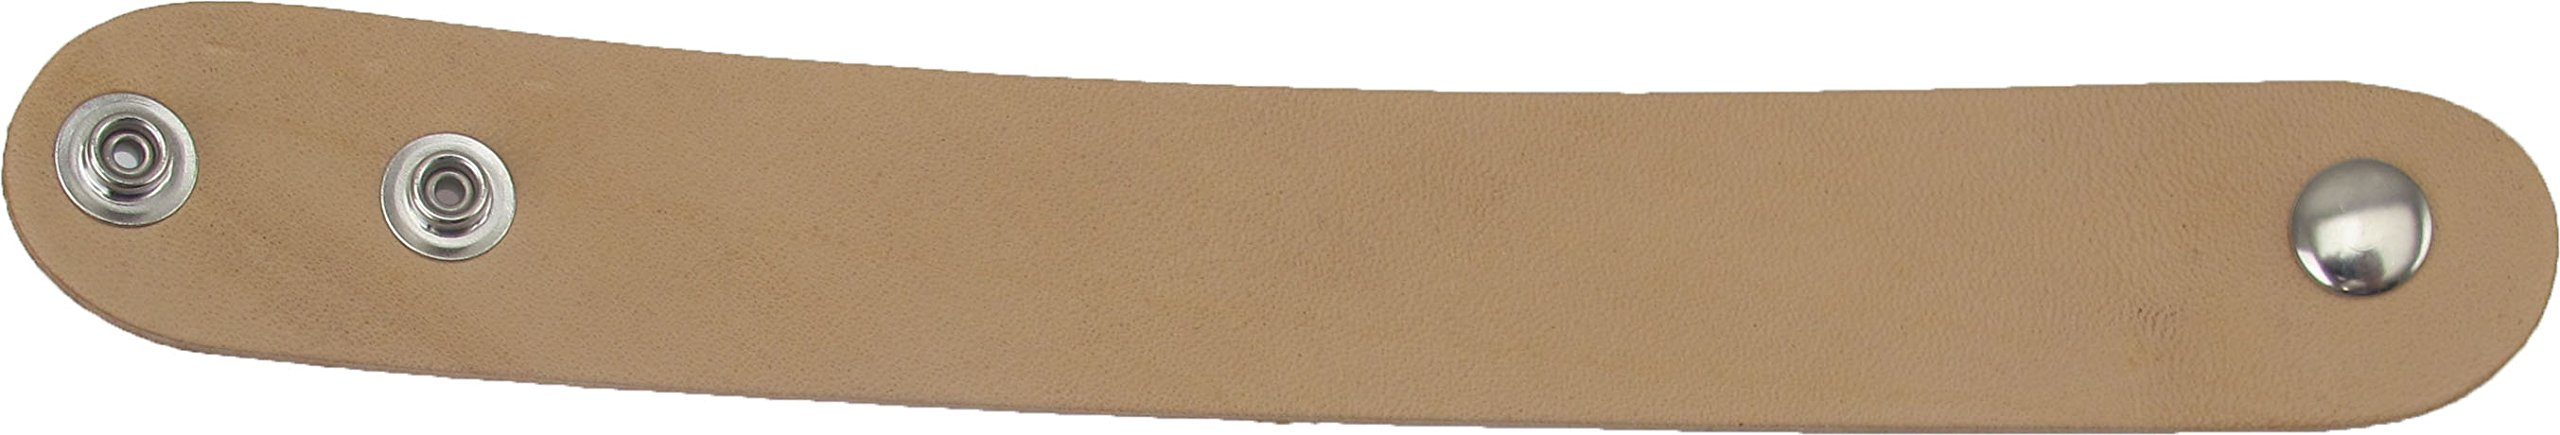 Springfield Leather Company 100 Pack of 1-1/4''x9'' Adjustable Leather Wristbands with Pre-attached Snaps